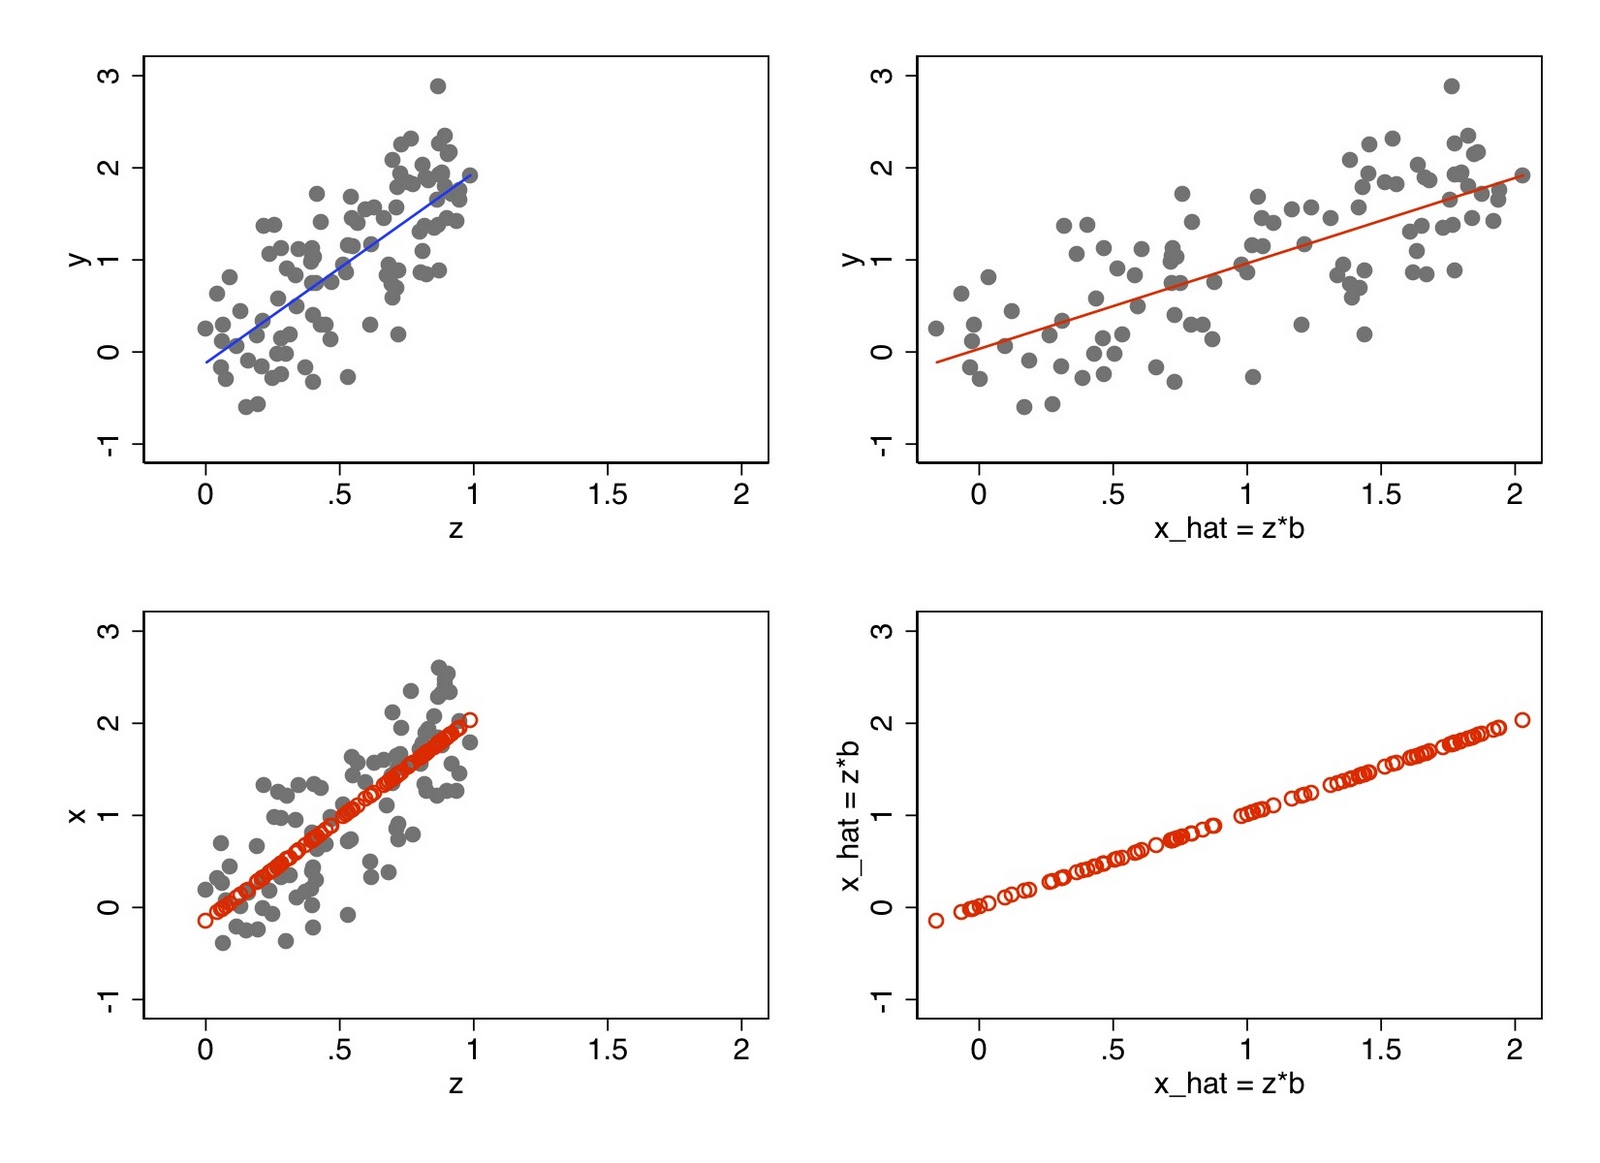 Fight Entropy: Why visualizing instrumental variables made